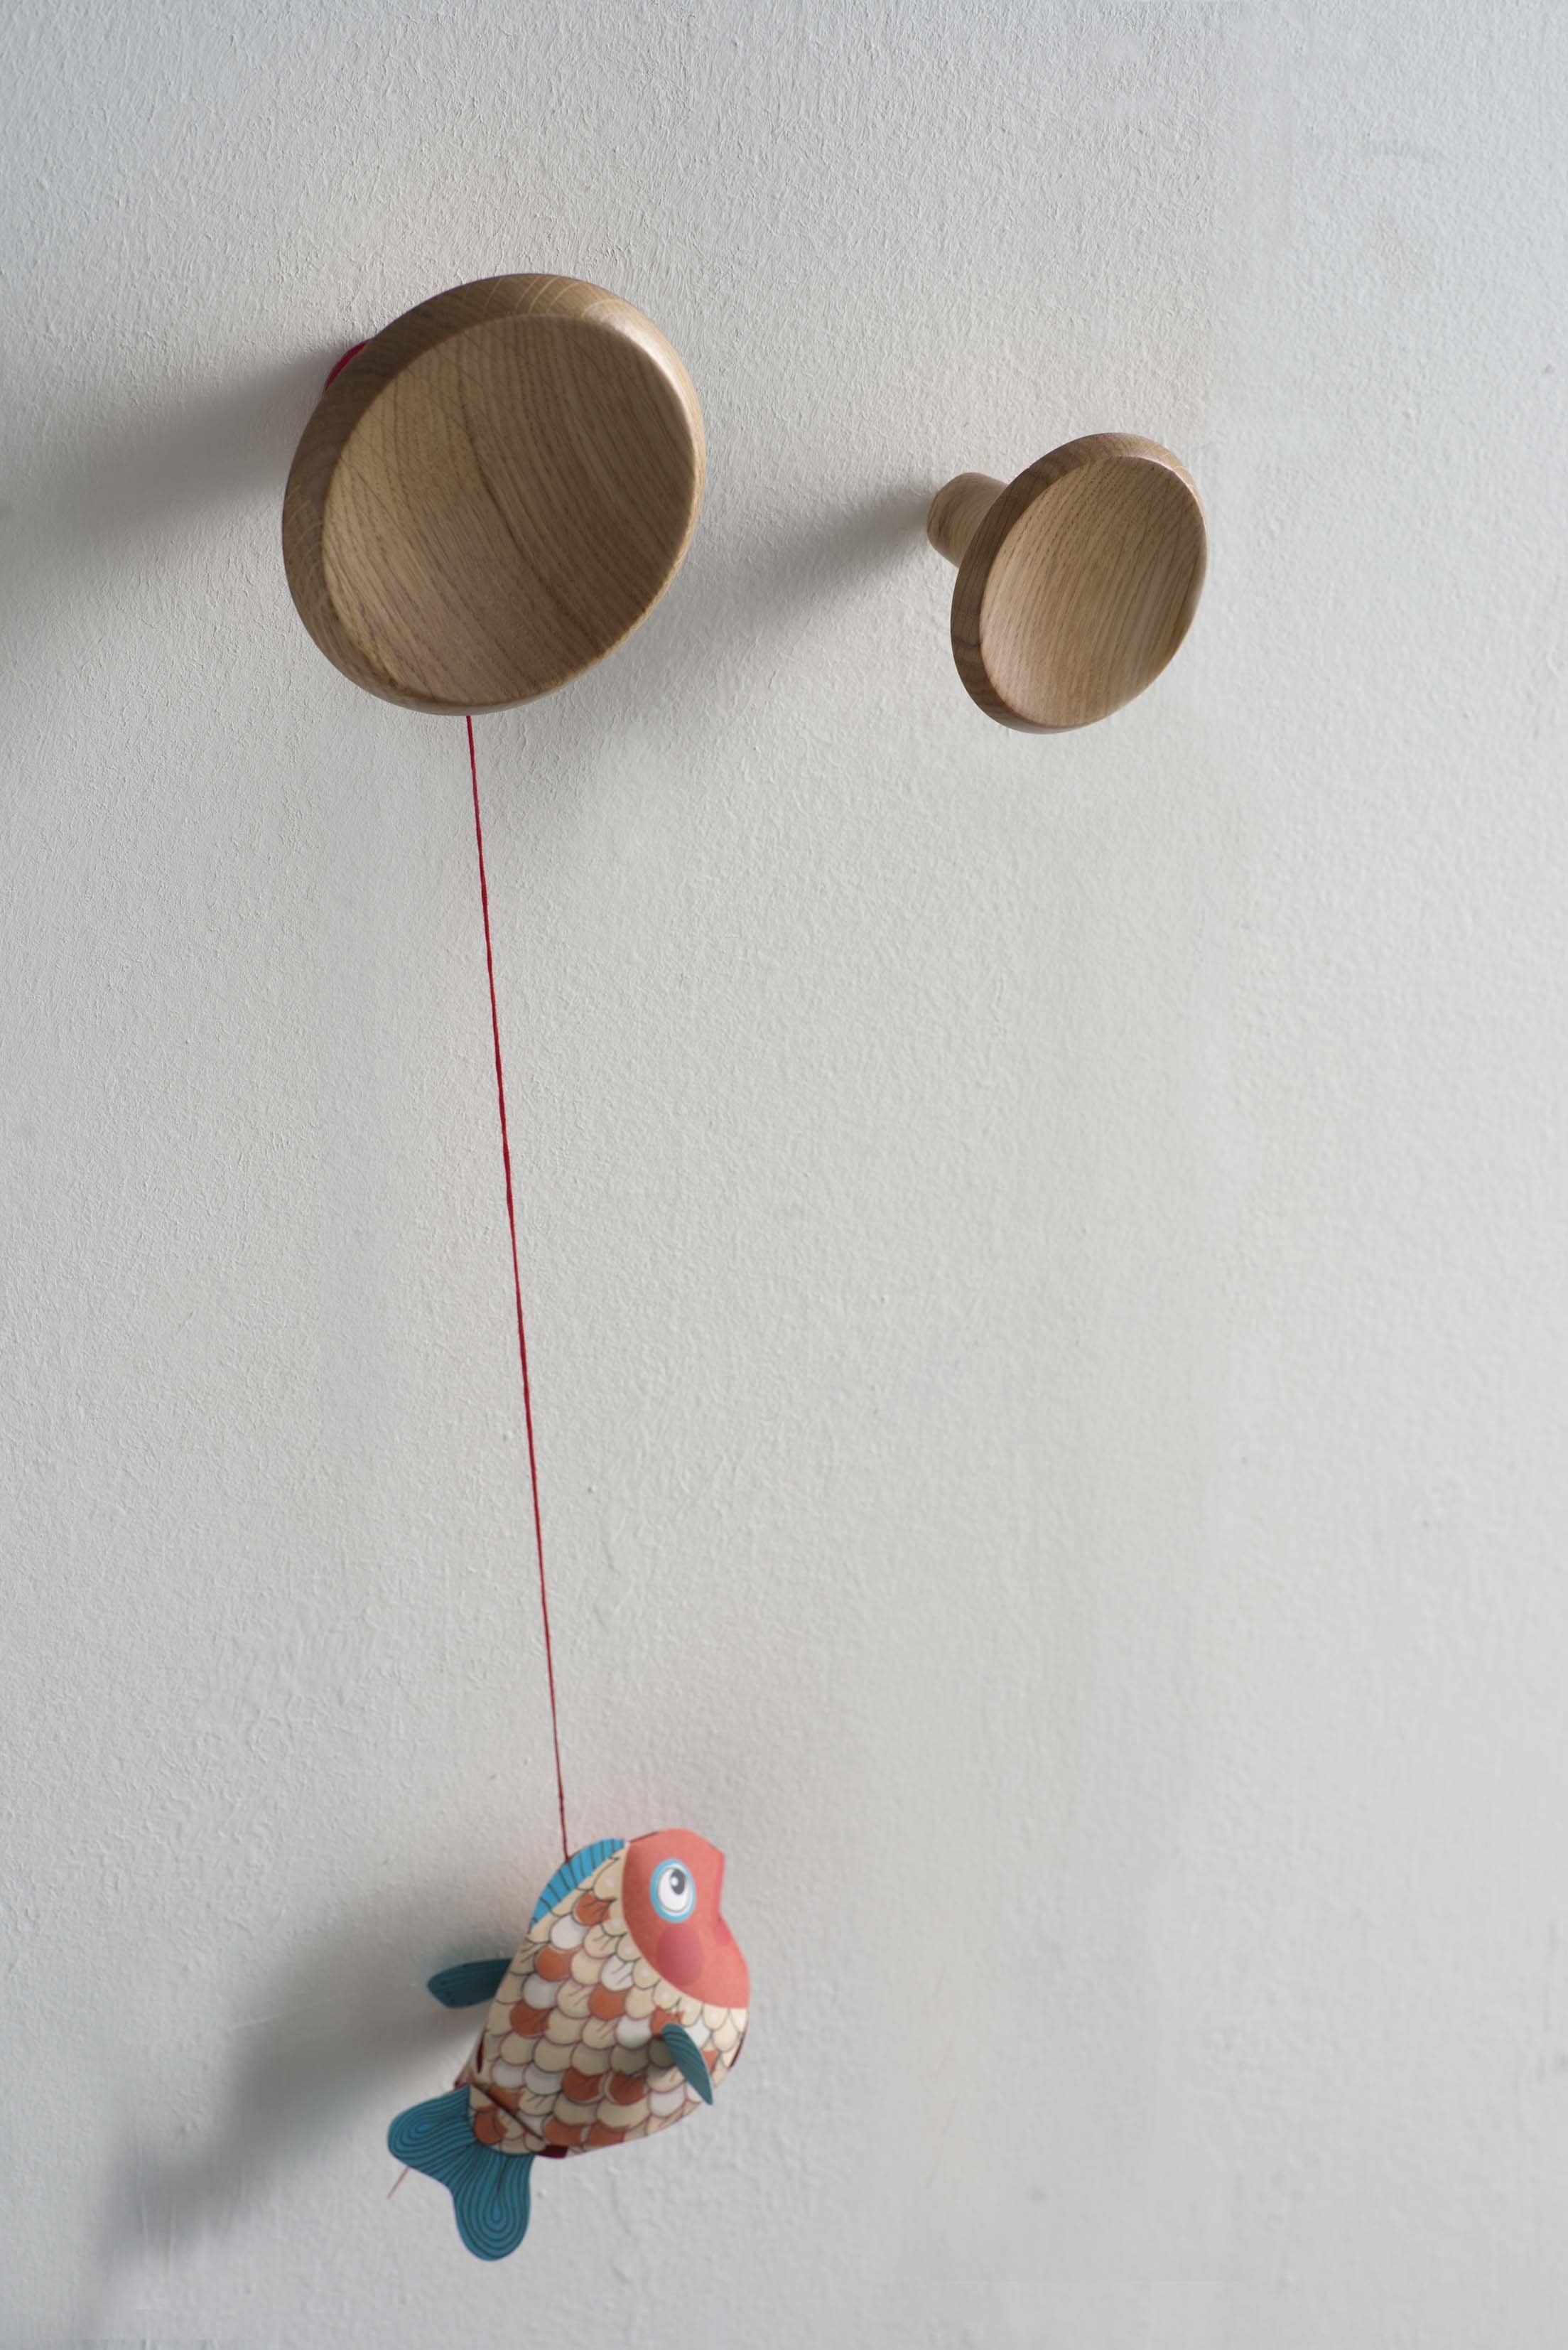 Porte manteau mural en bois de style contemporain pour enfants finferli by ex t design note for Porte manteau contemporain